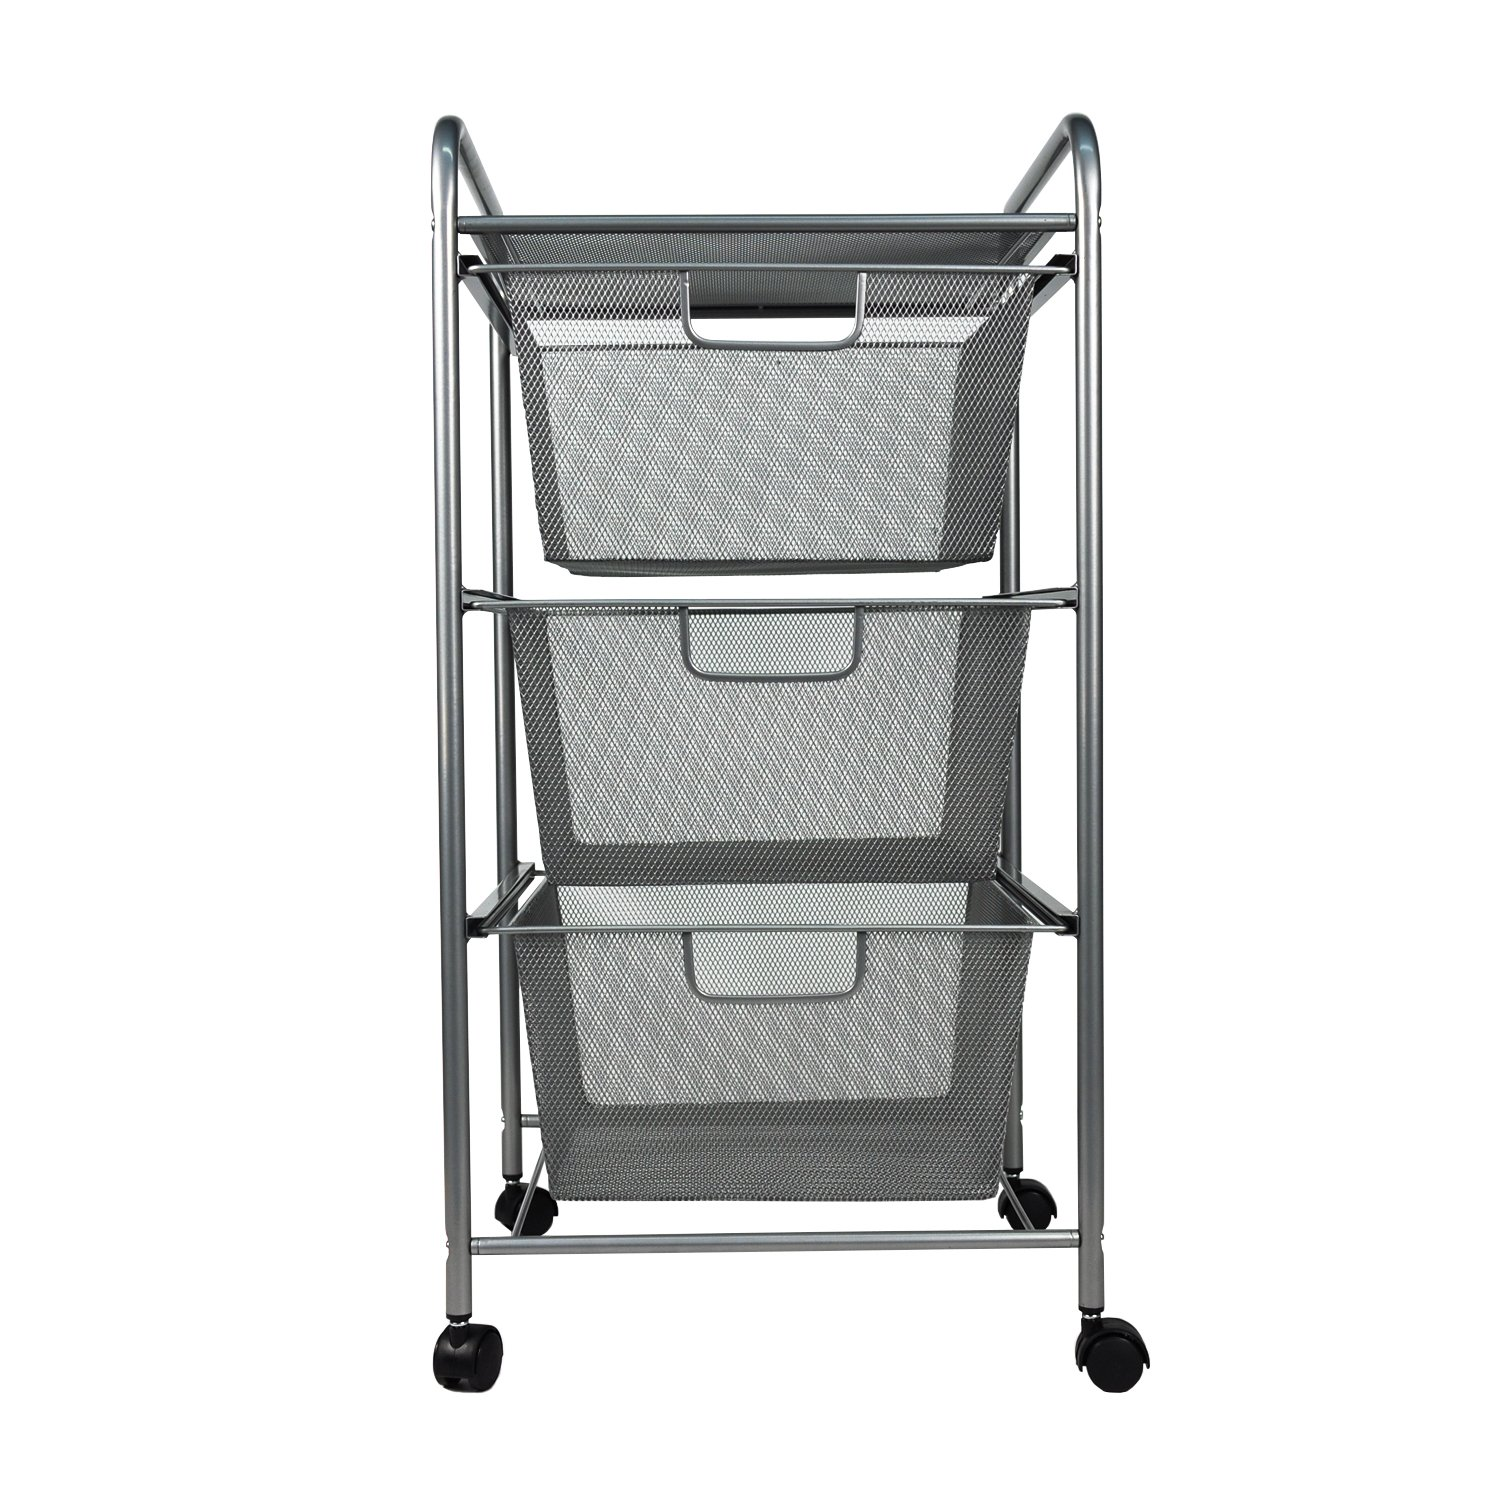 YIMU 3 Tier Metal Mesh Rolling Cart with 3 Drawers, Office& Kitchen Storage with Rolling Wheels, Silver, L14 W13 H27 Inches by YIMU